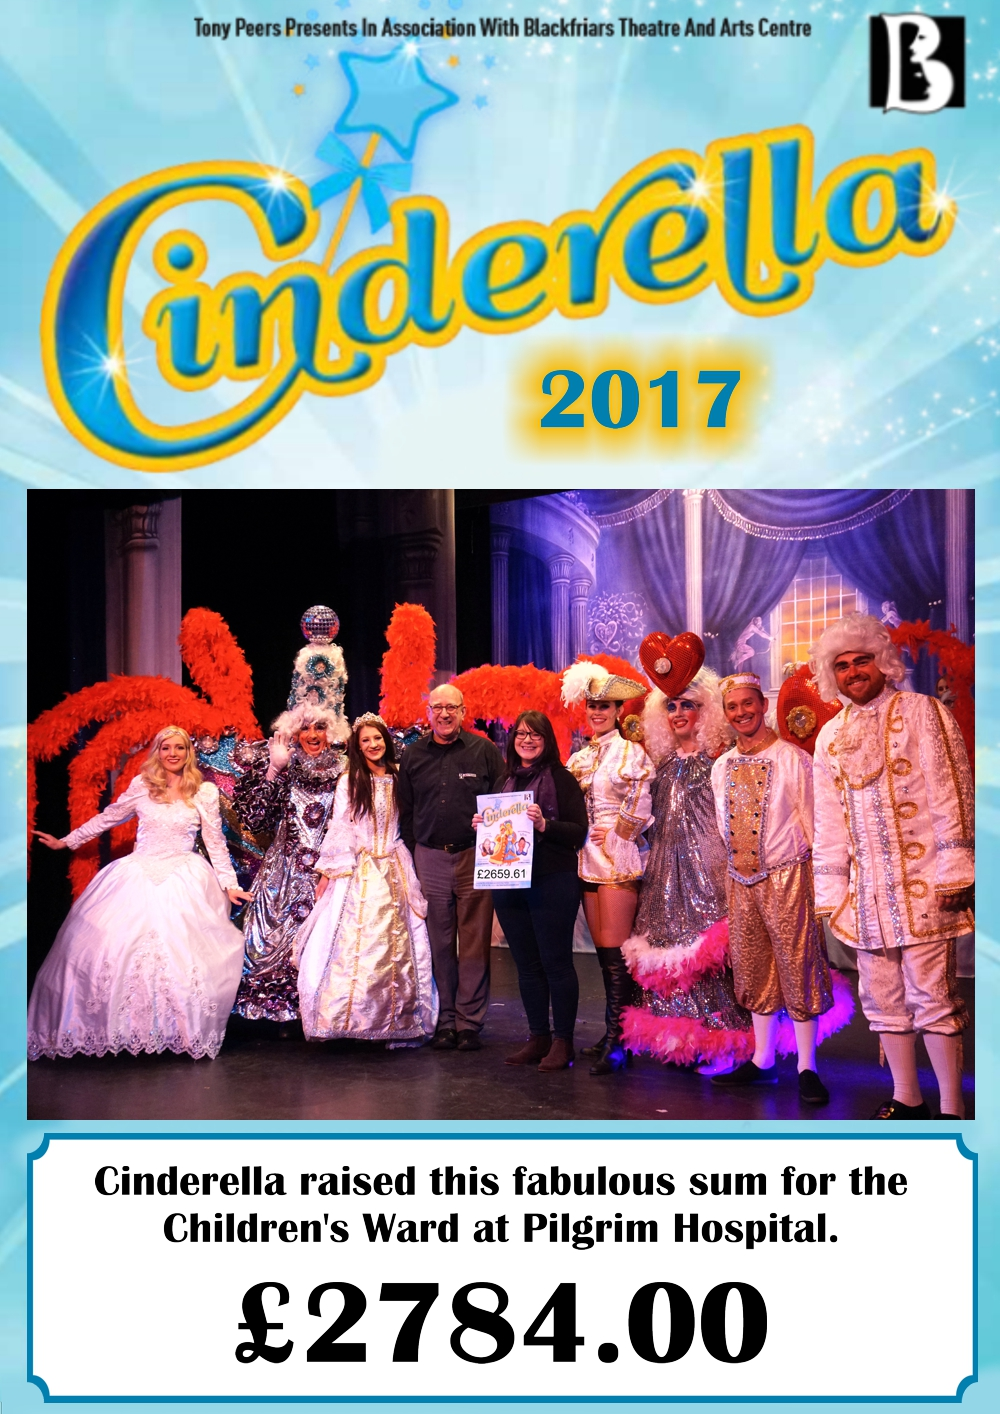 Cinderella raises thousands for Children's Ward for the 4th year running.